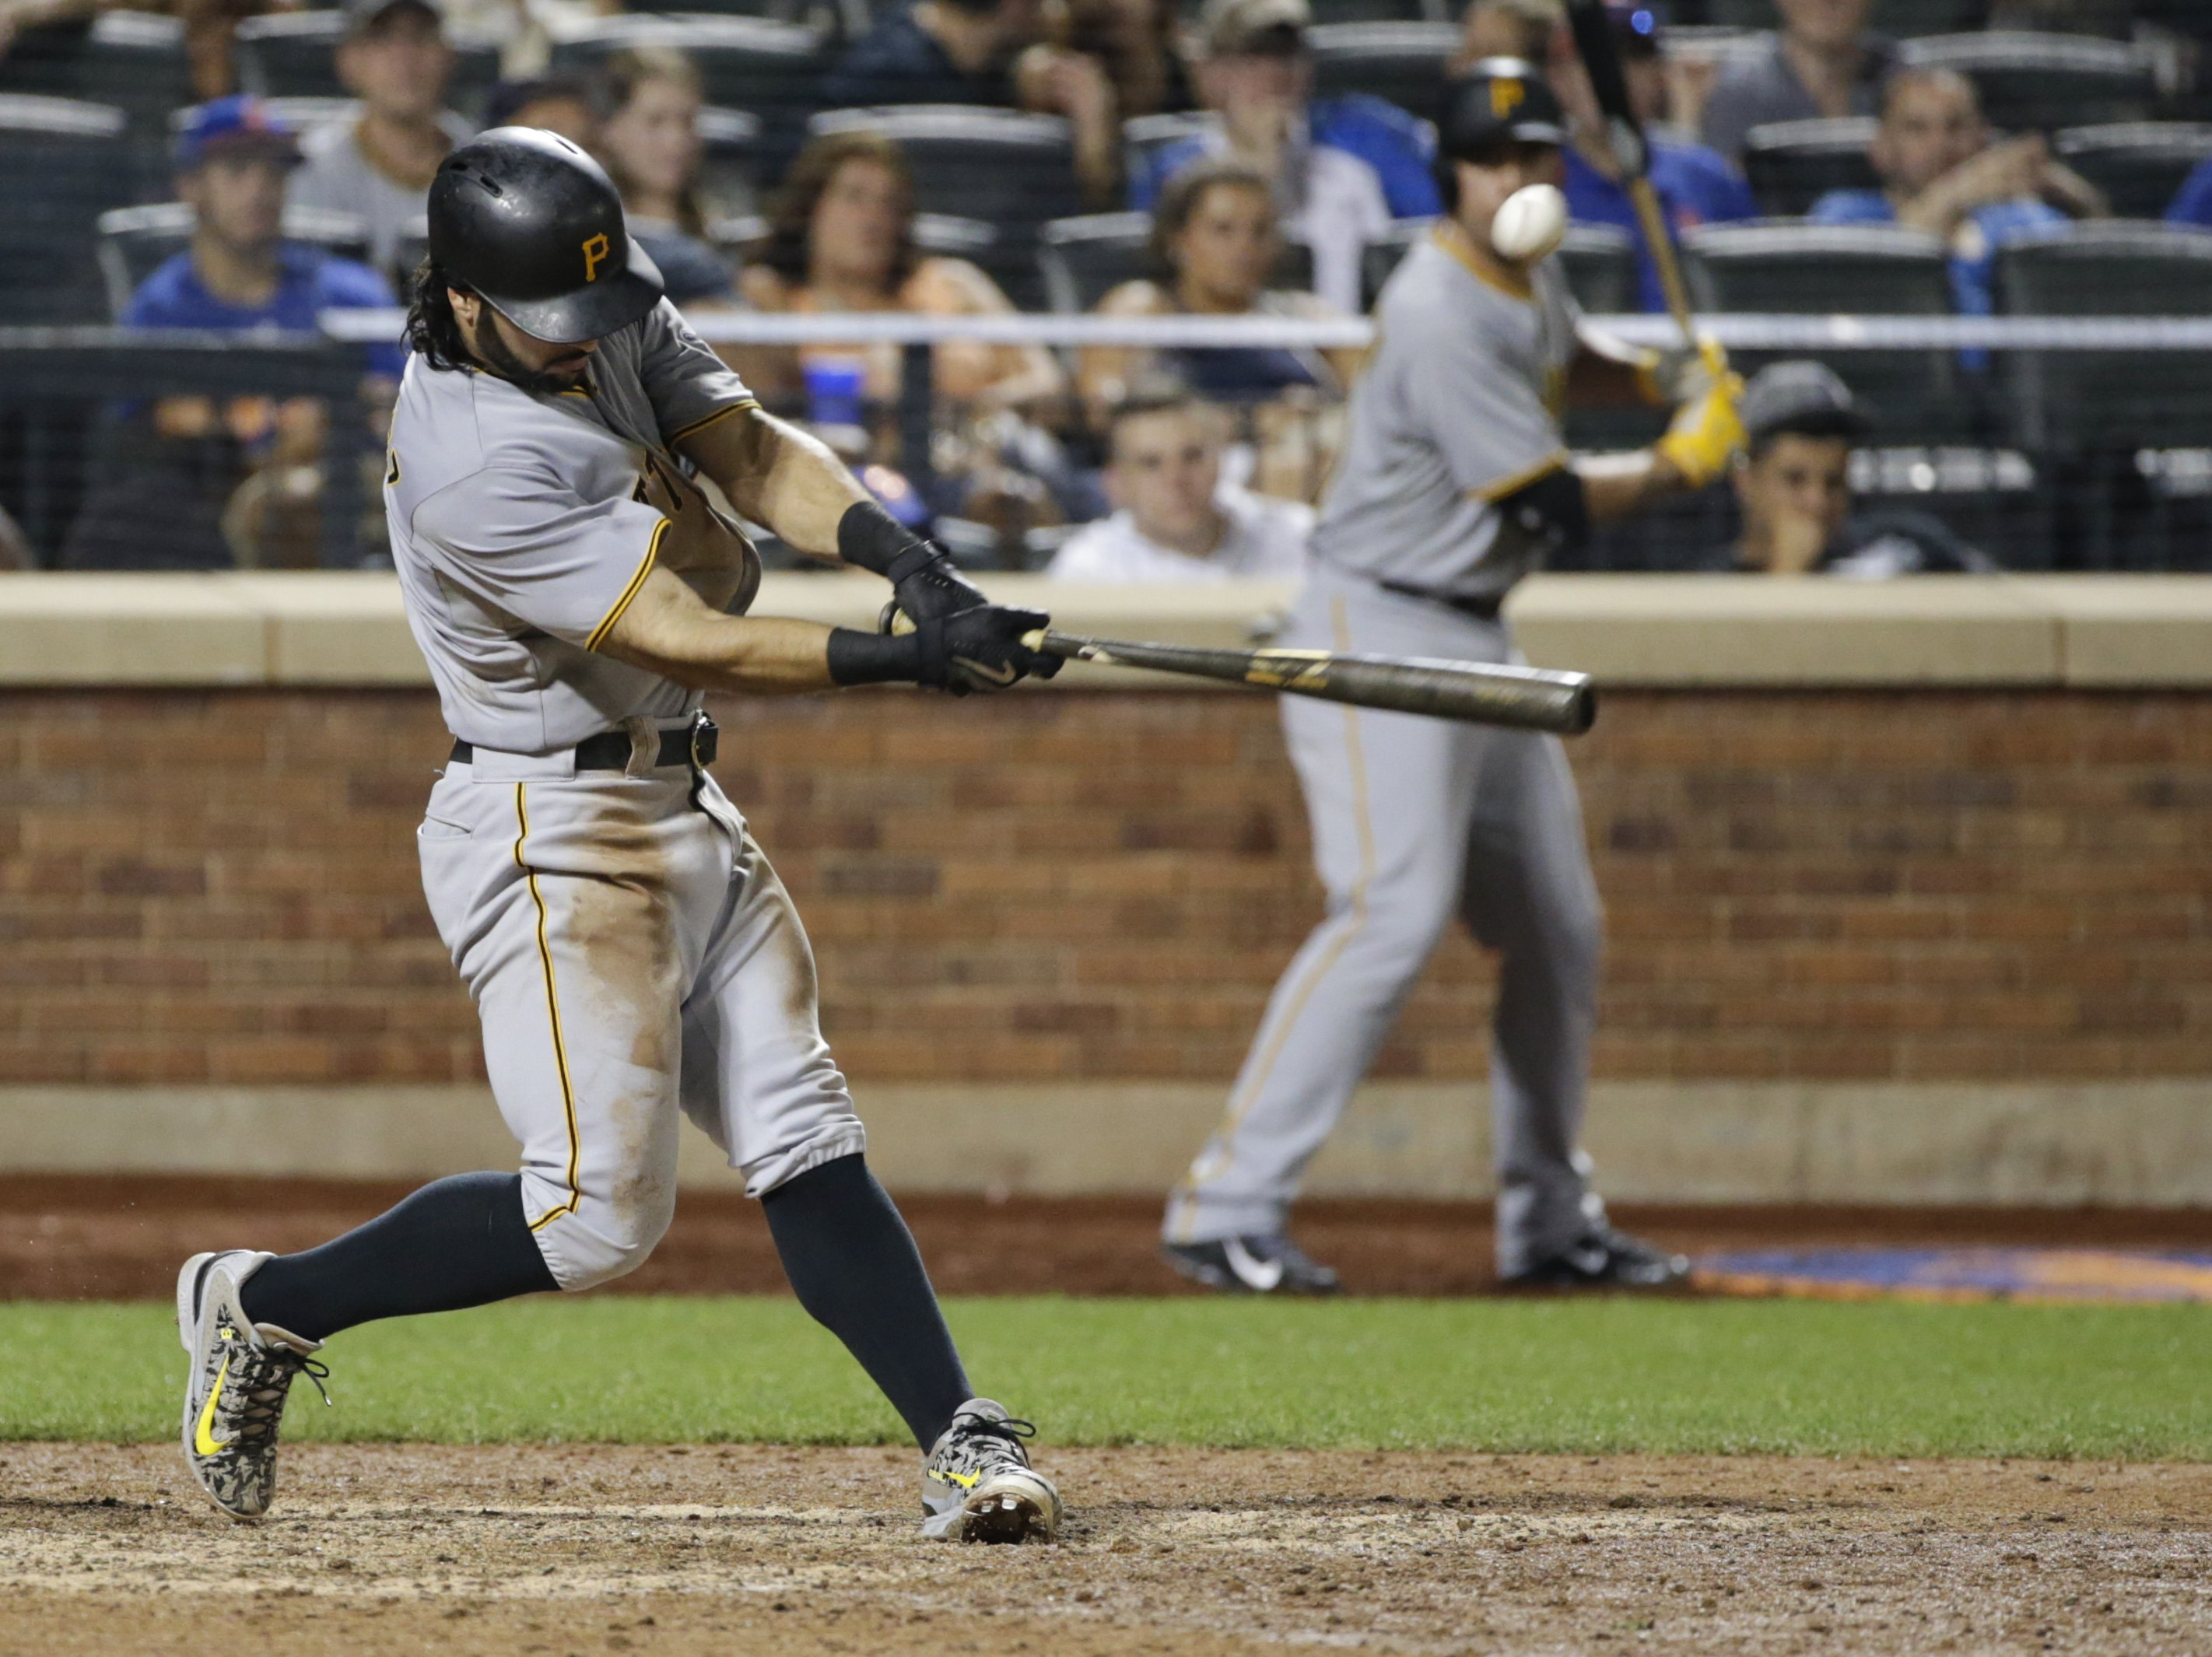 Pittsburgh Pirates' Sean Rodriguez (3) hits an hits an RBI single during the 14th inning of a baseball game against the New York Mets Saturday, Aug. 15, 2015, in New York. (AP Photo/Frank Franklin II)